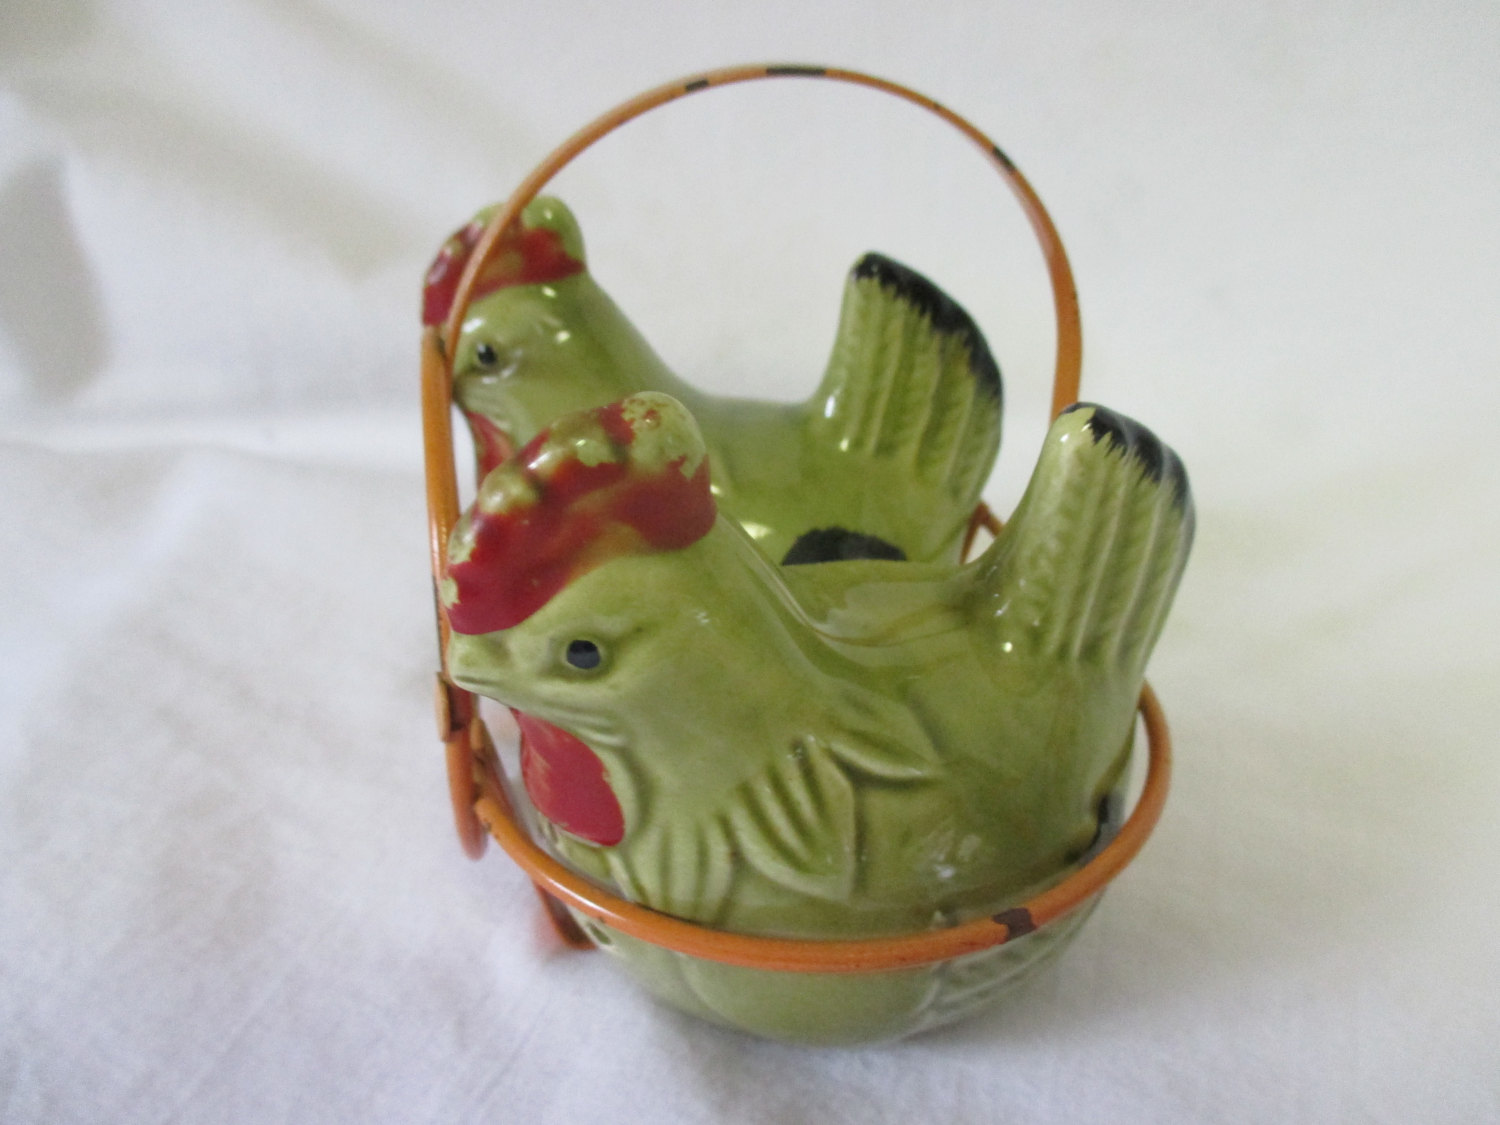 Mid Century Japan Pair of Chickens in a Metal basket Pottery Green Chicken Collectible Display Salt & Mid Century Japan Pair of Chickens in a Metal basket Pottery Green ...